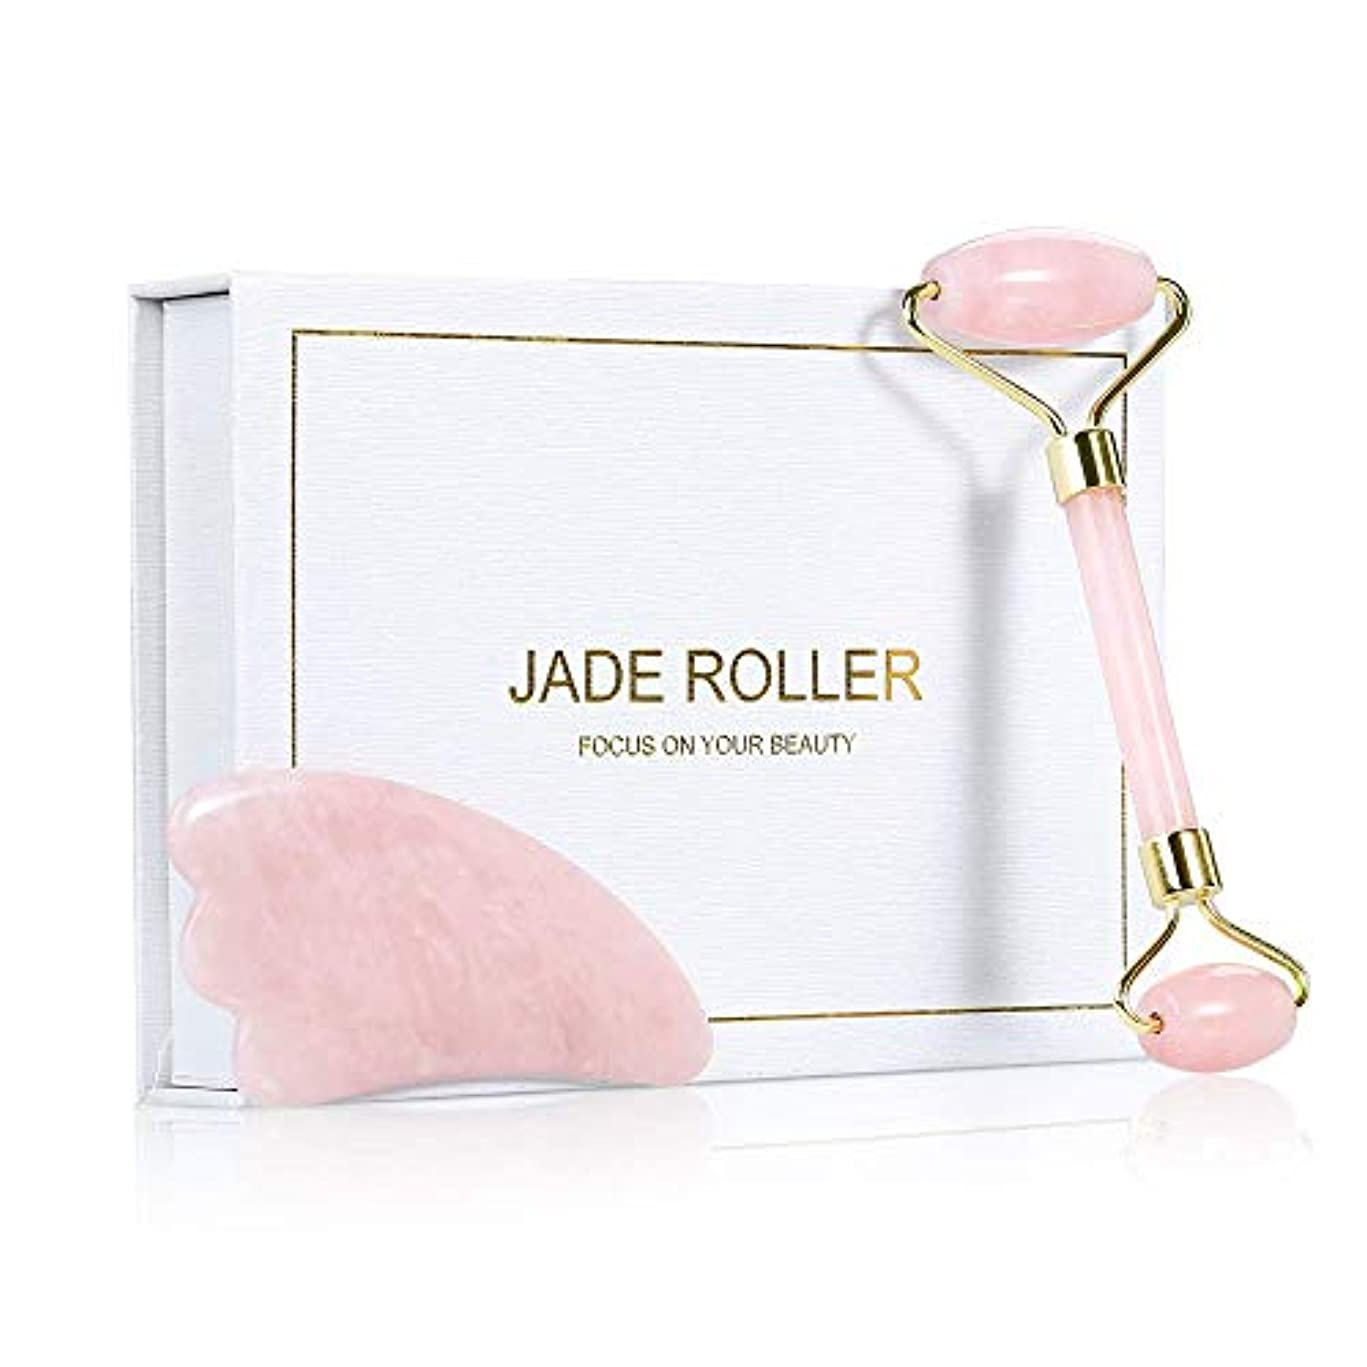 酸っぱい一握り南Rose Quartz Jade Roller for Face 2 in 1 Gua Sha Tools Including Rose Quartz Roller and Jade Face Massager,100%...